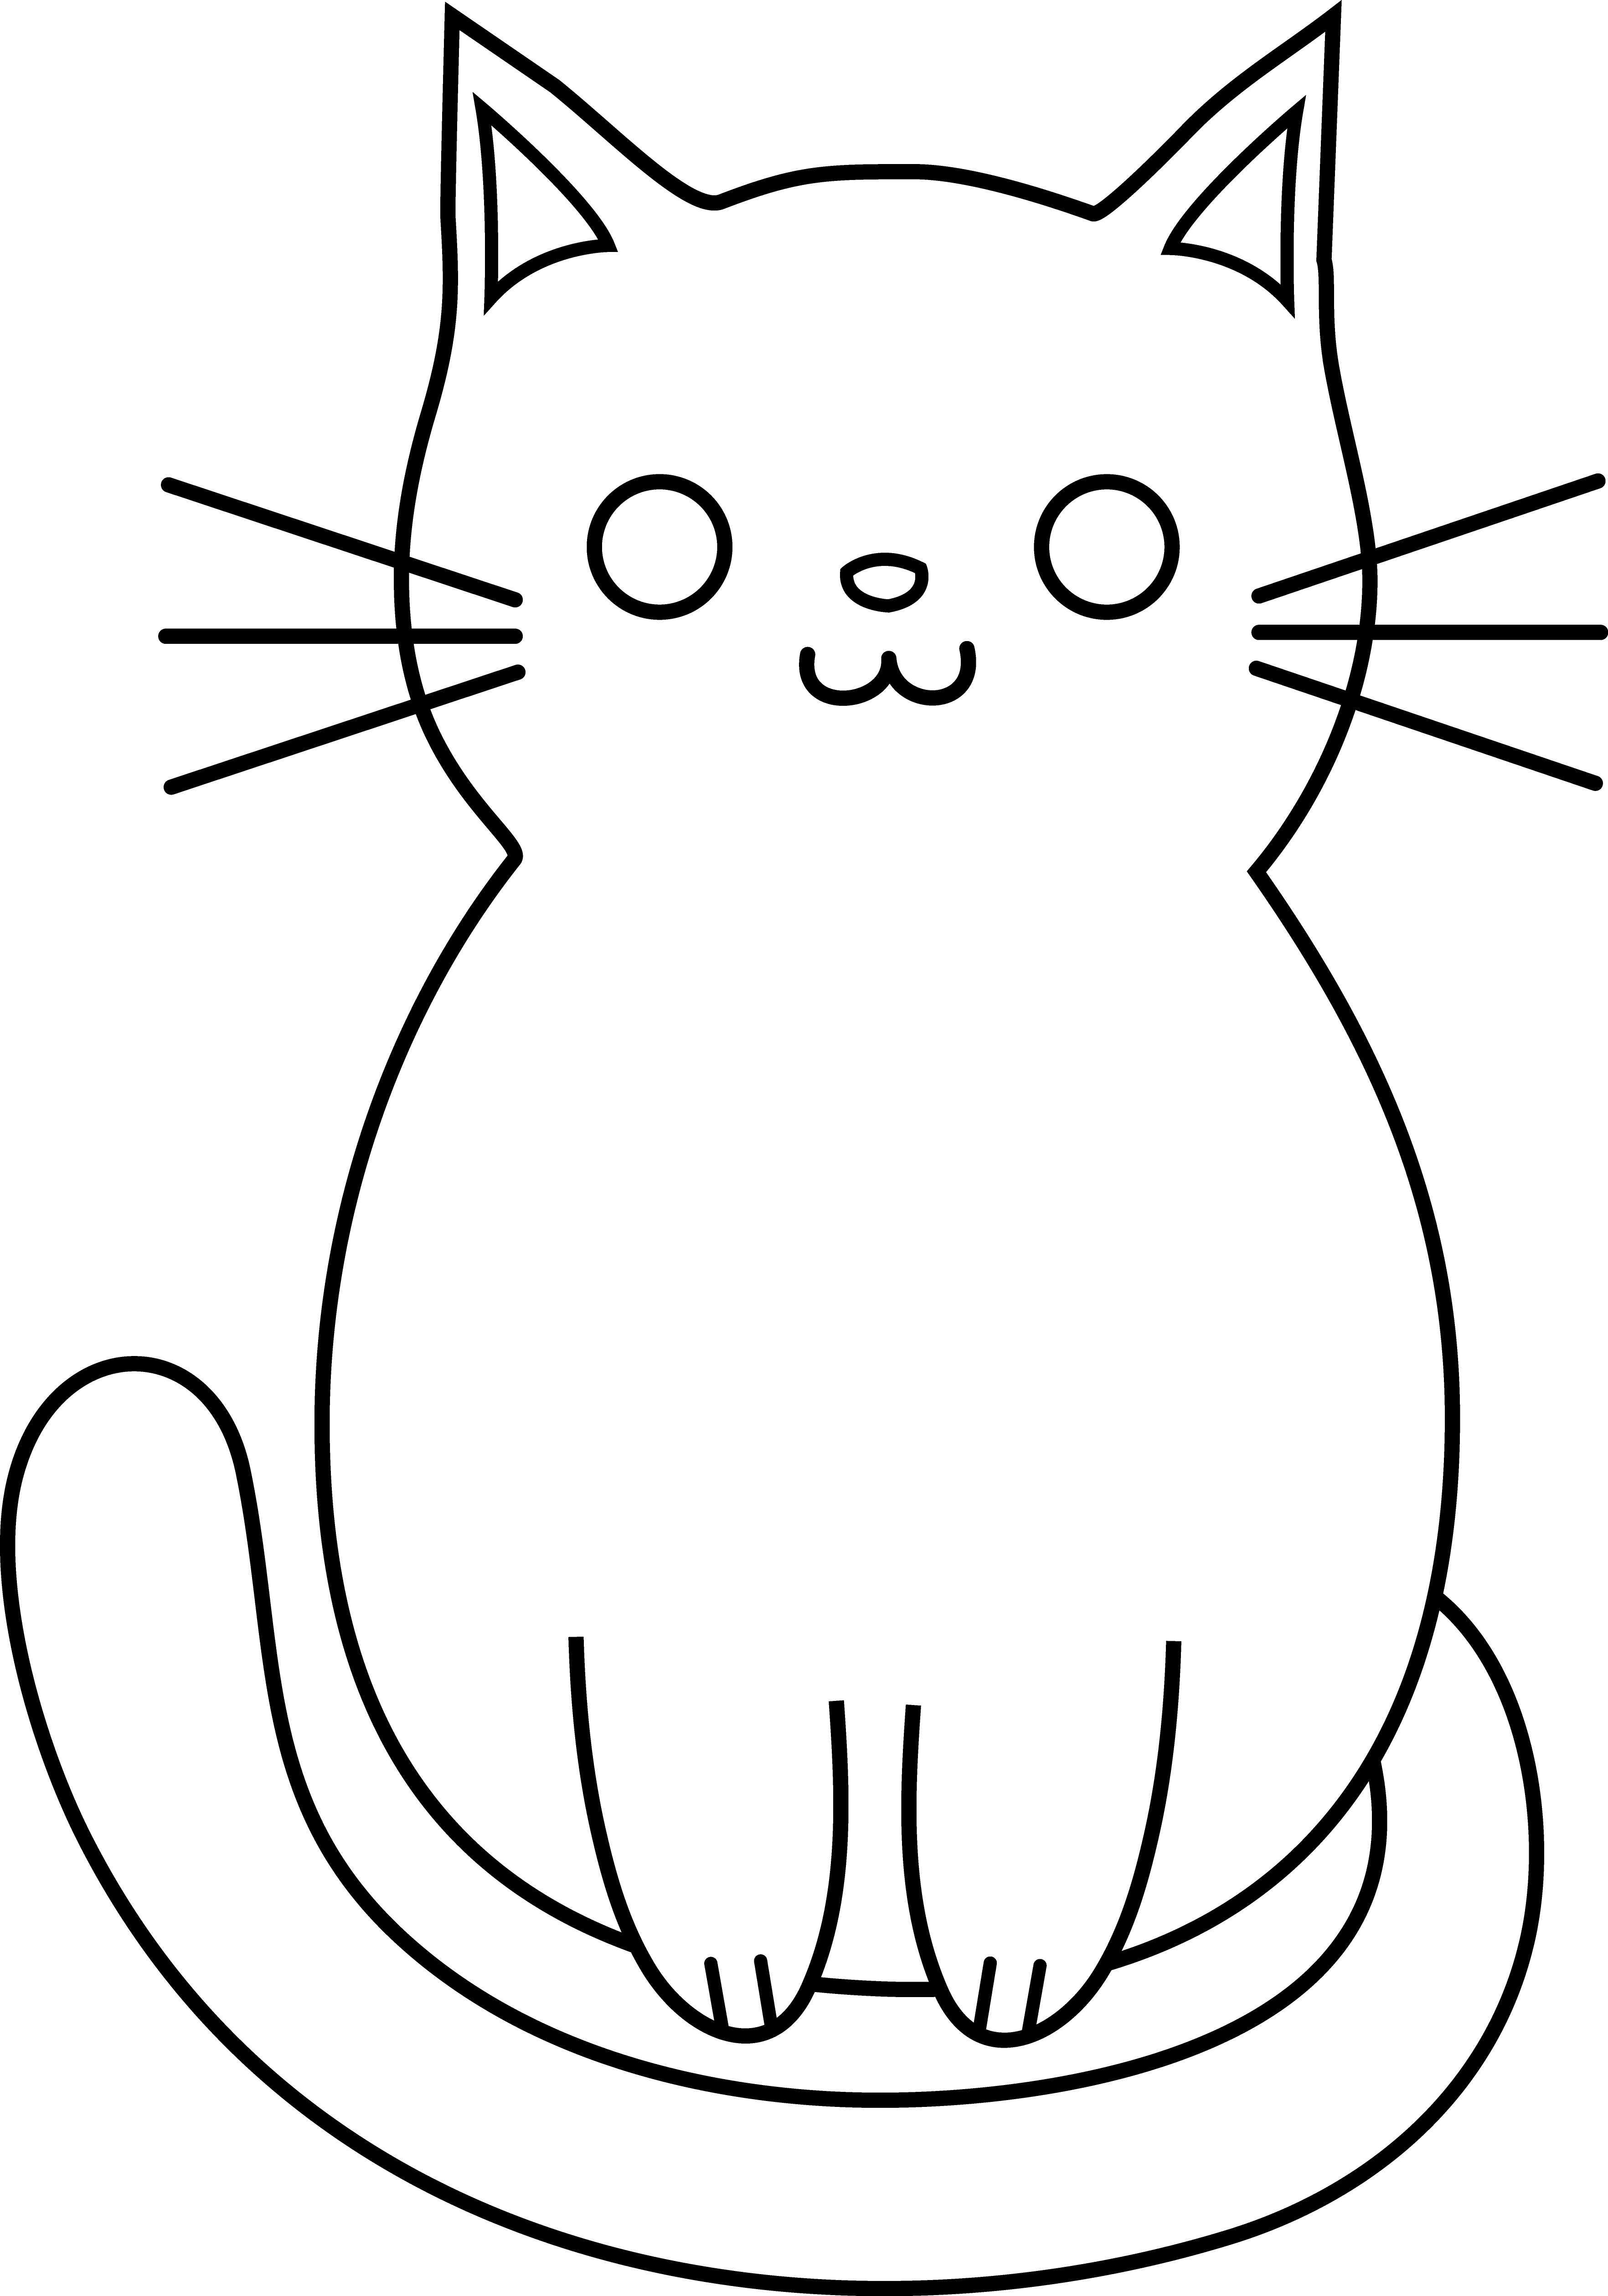 Cat simple. Easy drawing pic face